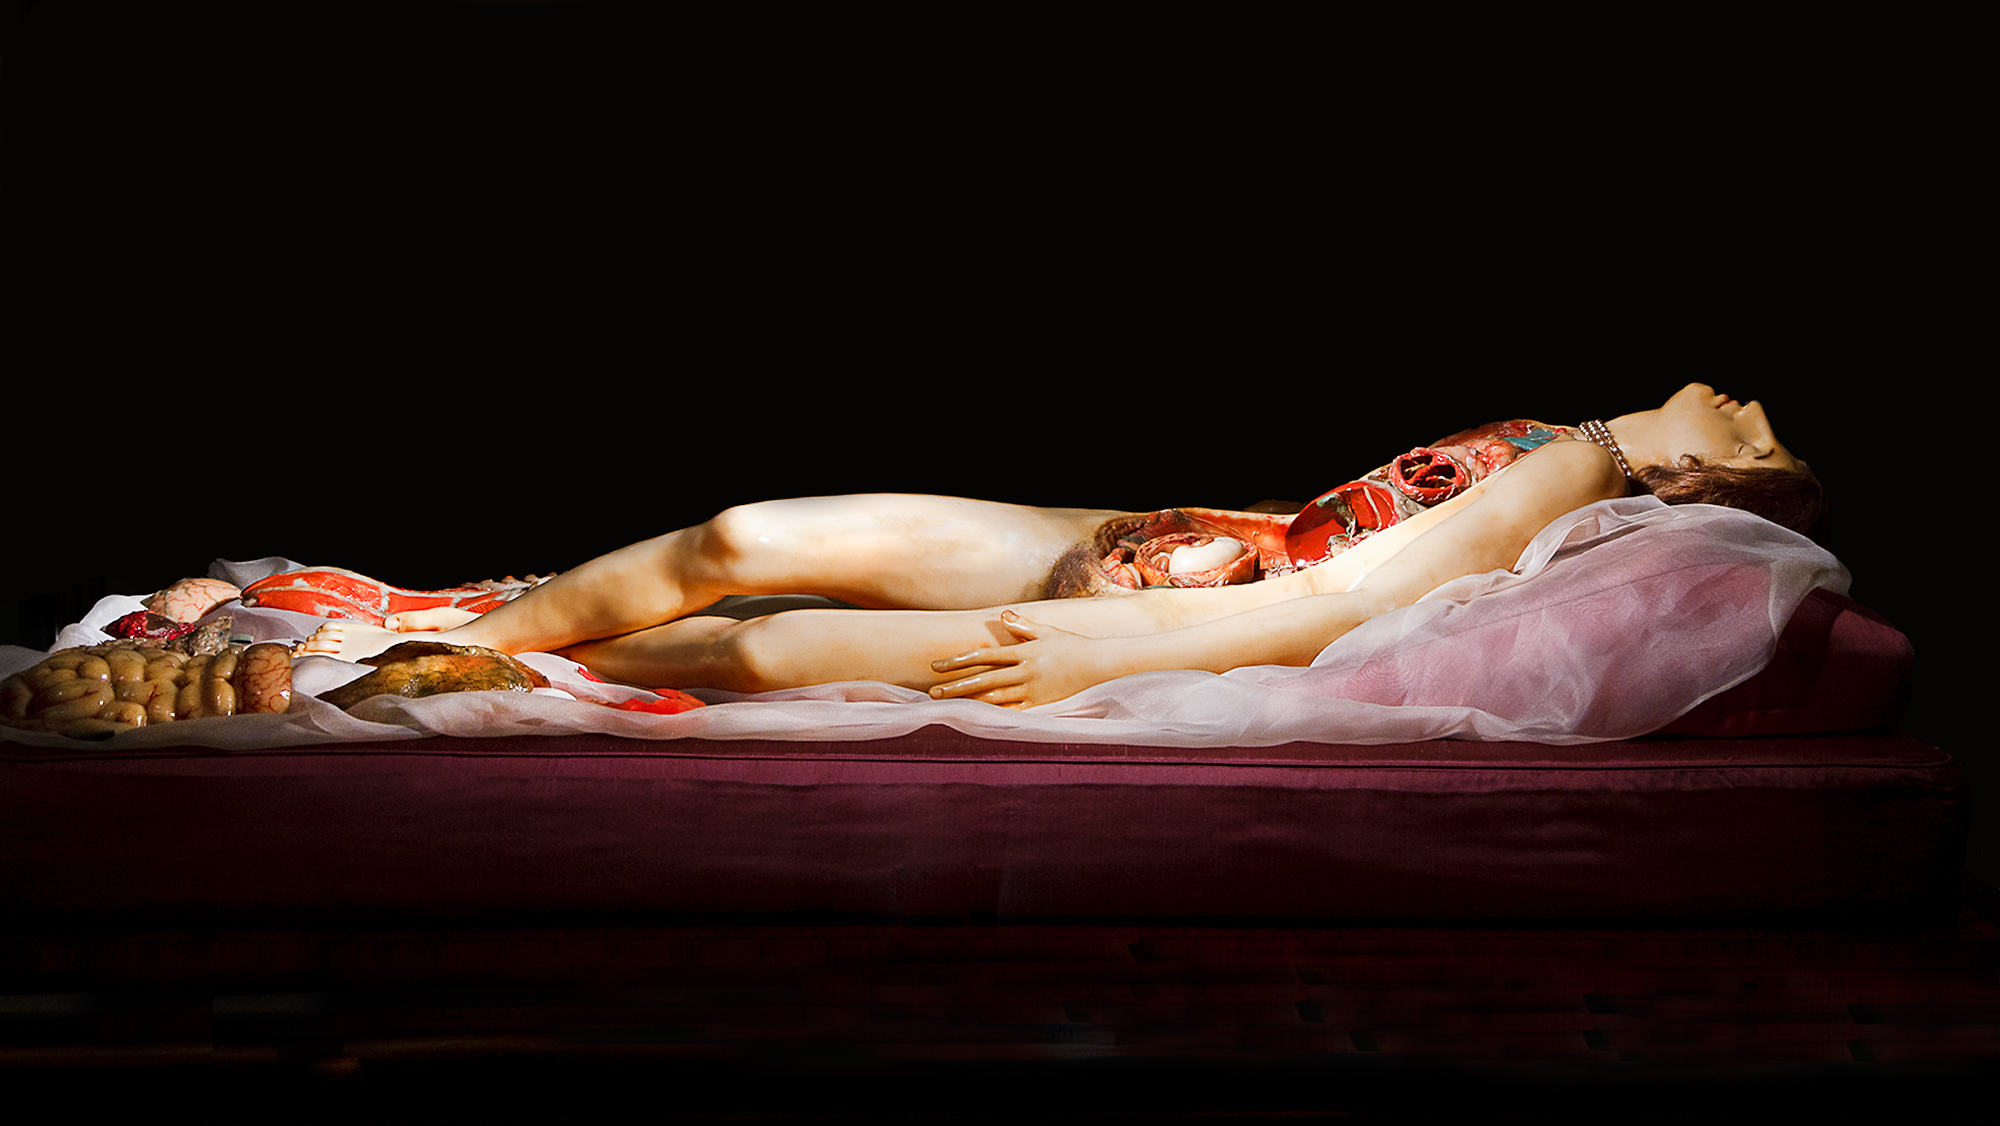 """The """"Venerina"""" or """"Little Venus"""" anatomical model by Clemente Susini, 1782, as seen at the Palazzo Poggi in Bologna, Italy. Photo by Joanna Ebenstein, Morbid Anatomy."""